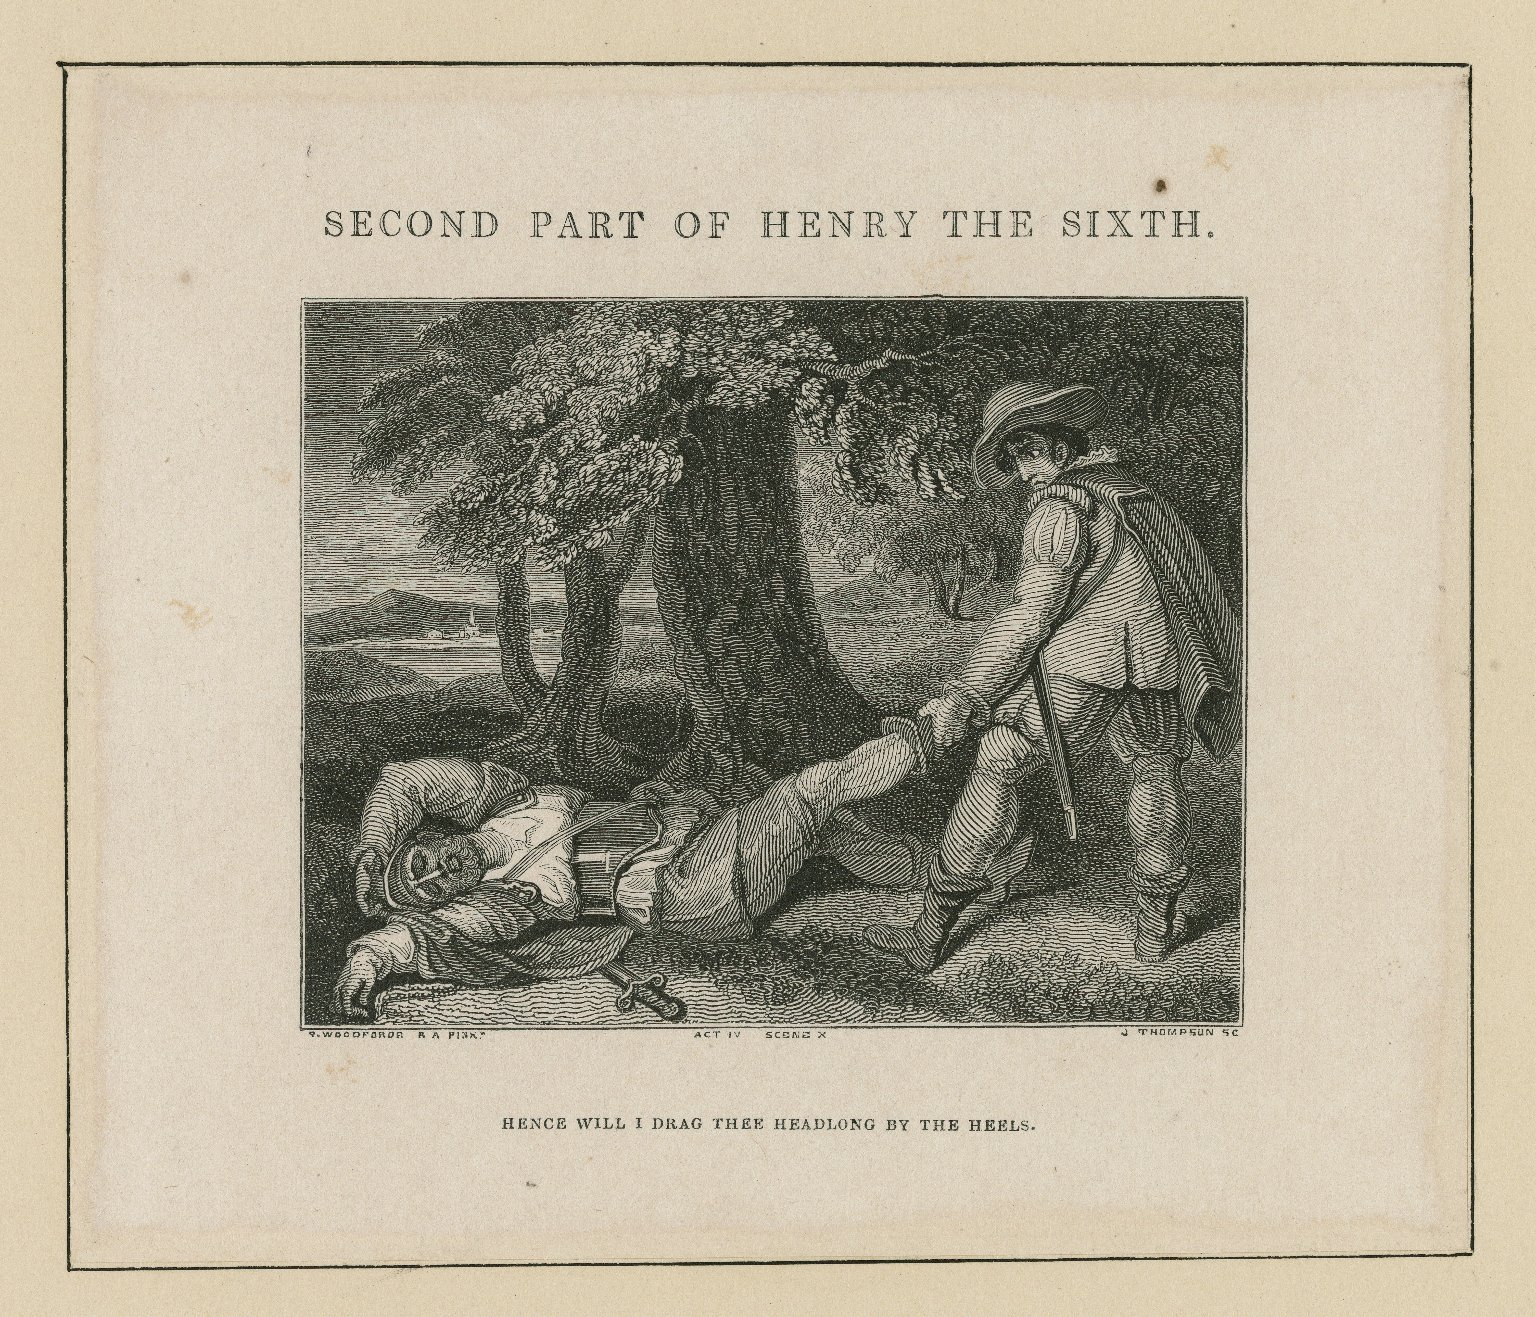 Second part of Henry the Sixth: Hence will I drag thee headlong by the heels, act IV, scene x ... [graphic] / S. Woodforde R.A. pinxt. ; J. Thompson sc.